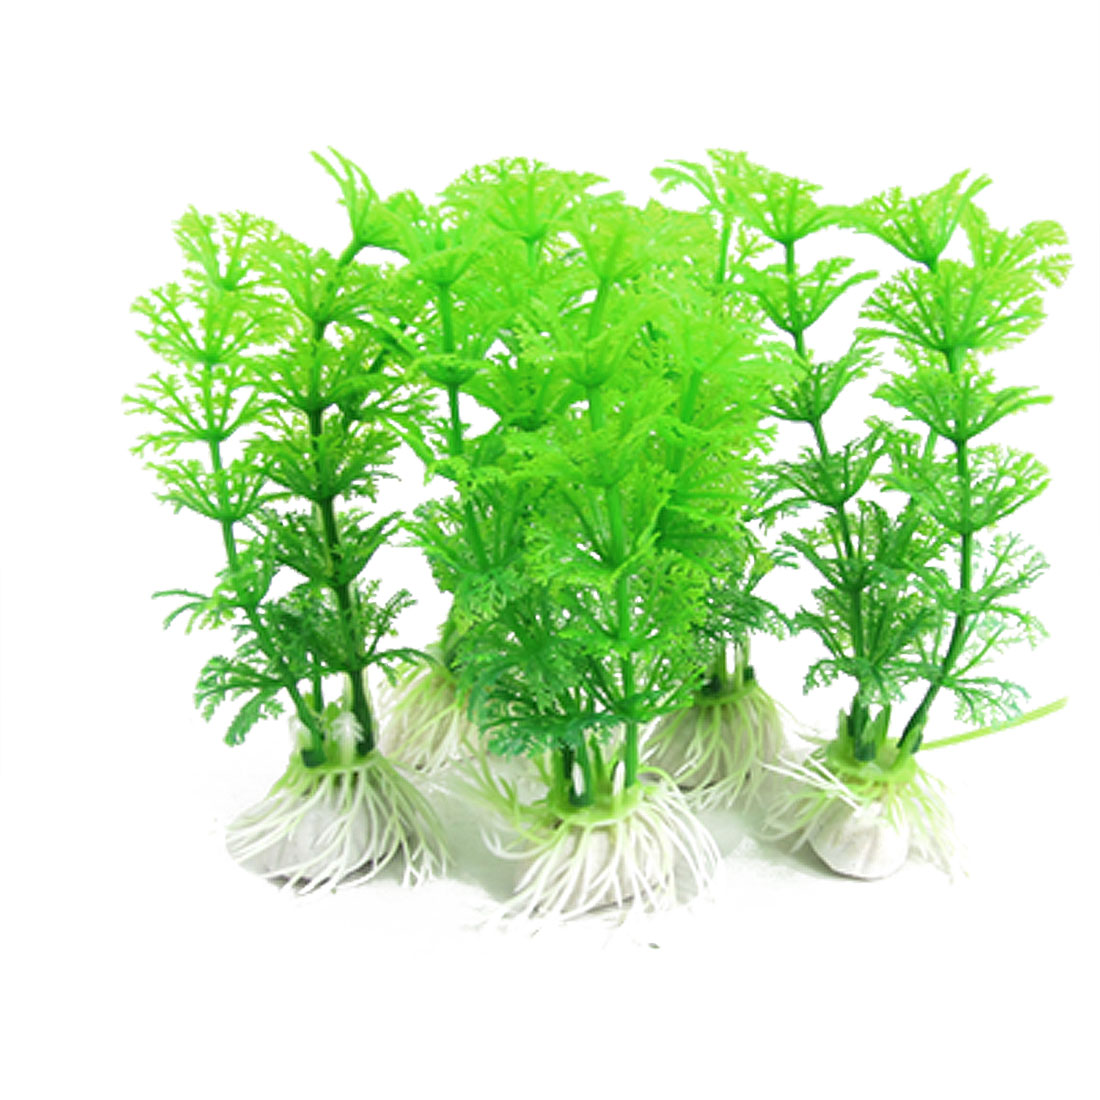 Fish Tank Aquarium Green Water Plastic Plant 5 Pcs w Base